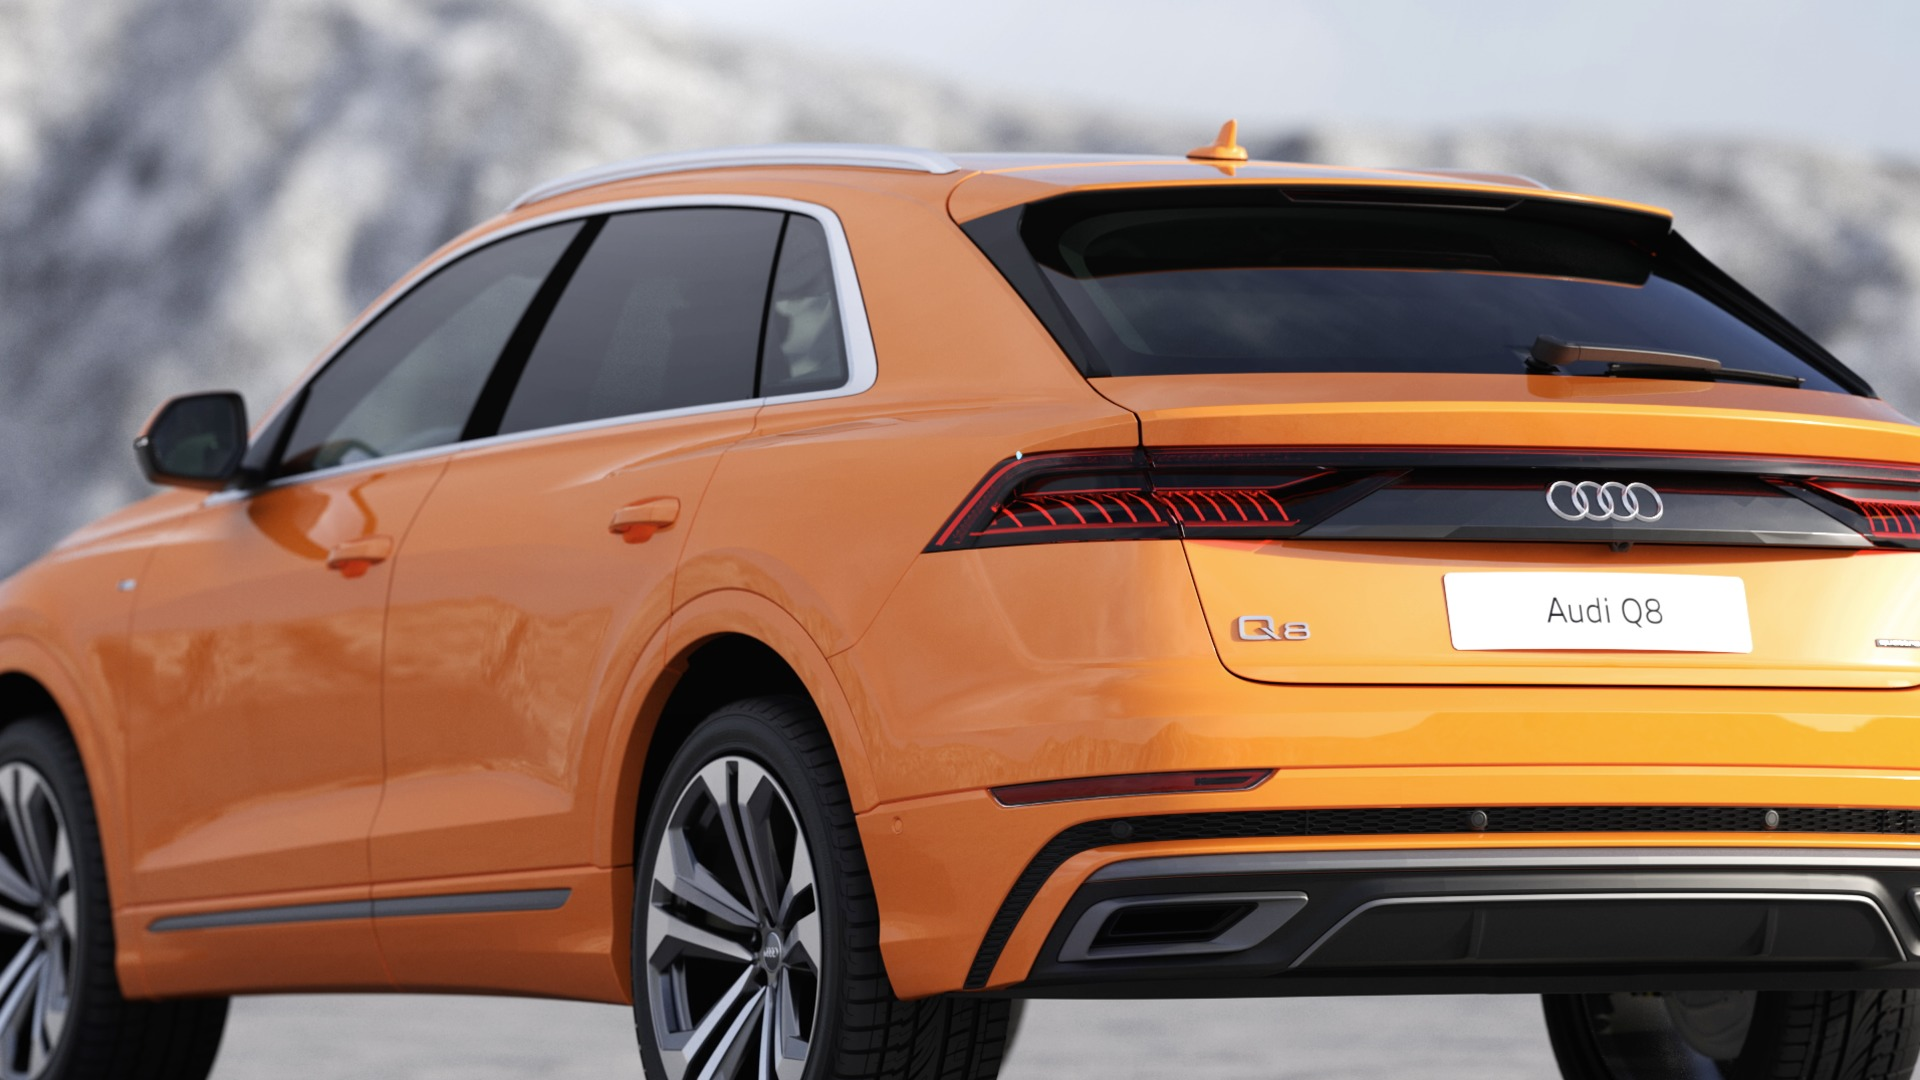 Animation Audi Q8 Exterieurdesign